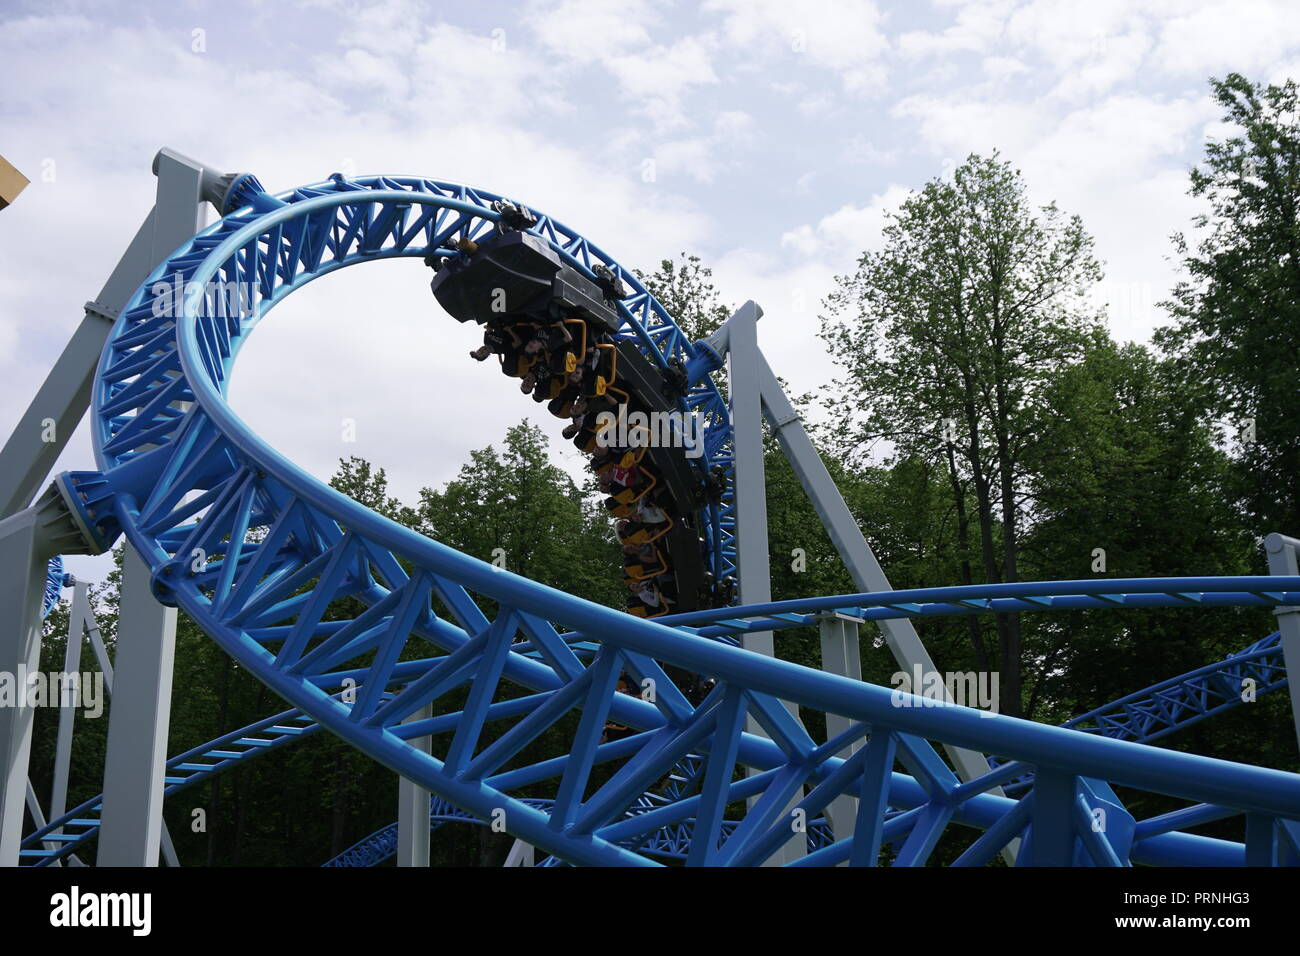 roller coaster attractions fun in the park for children - Stock Image